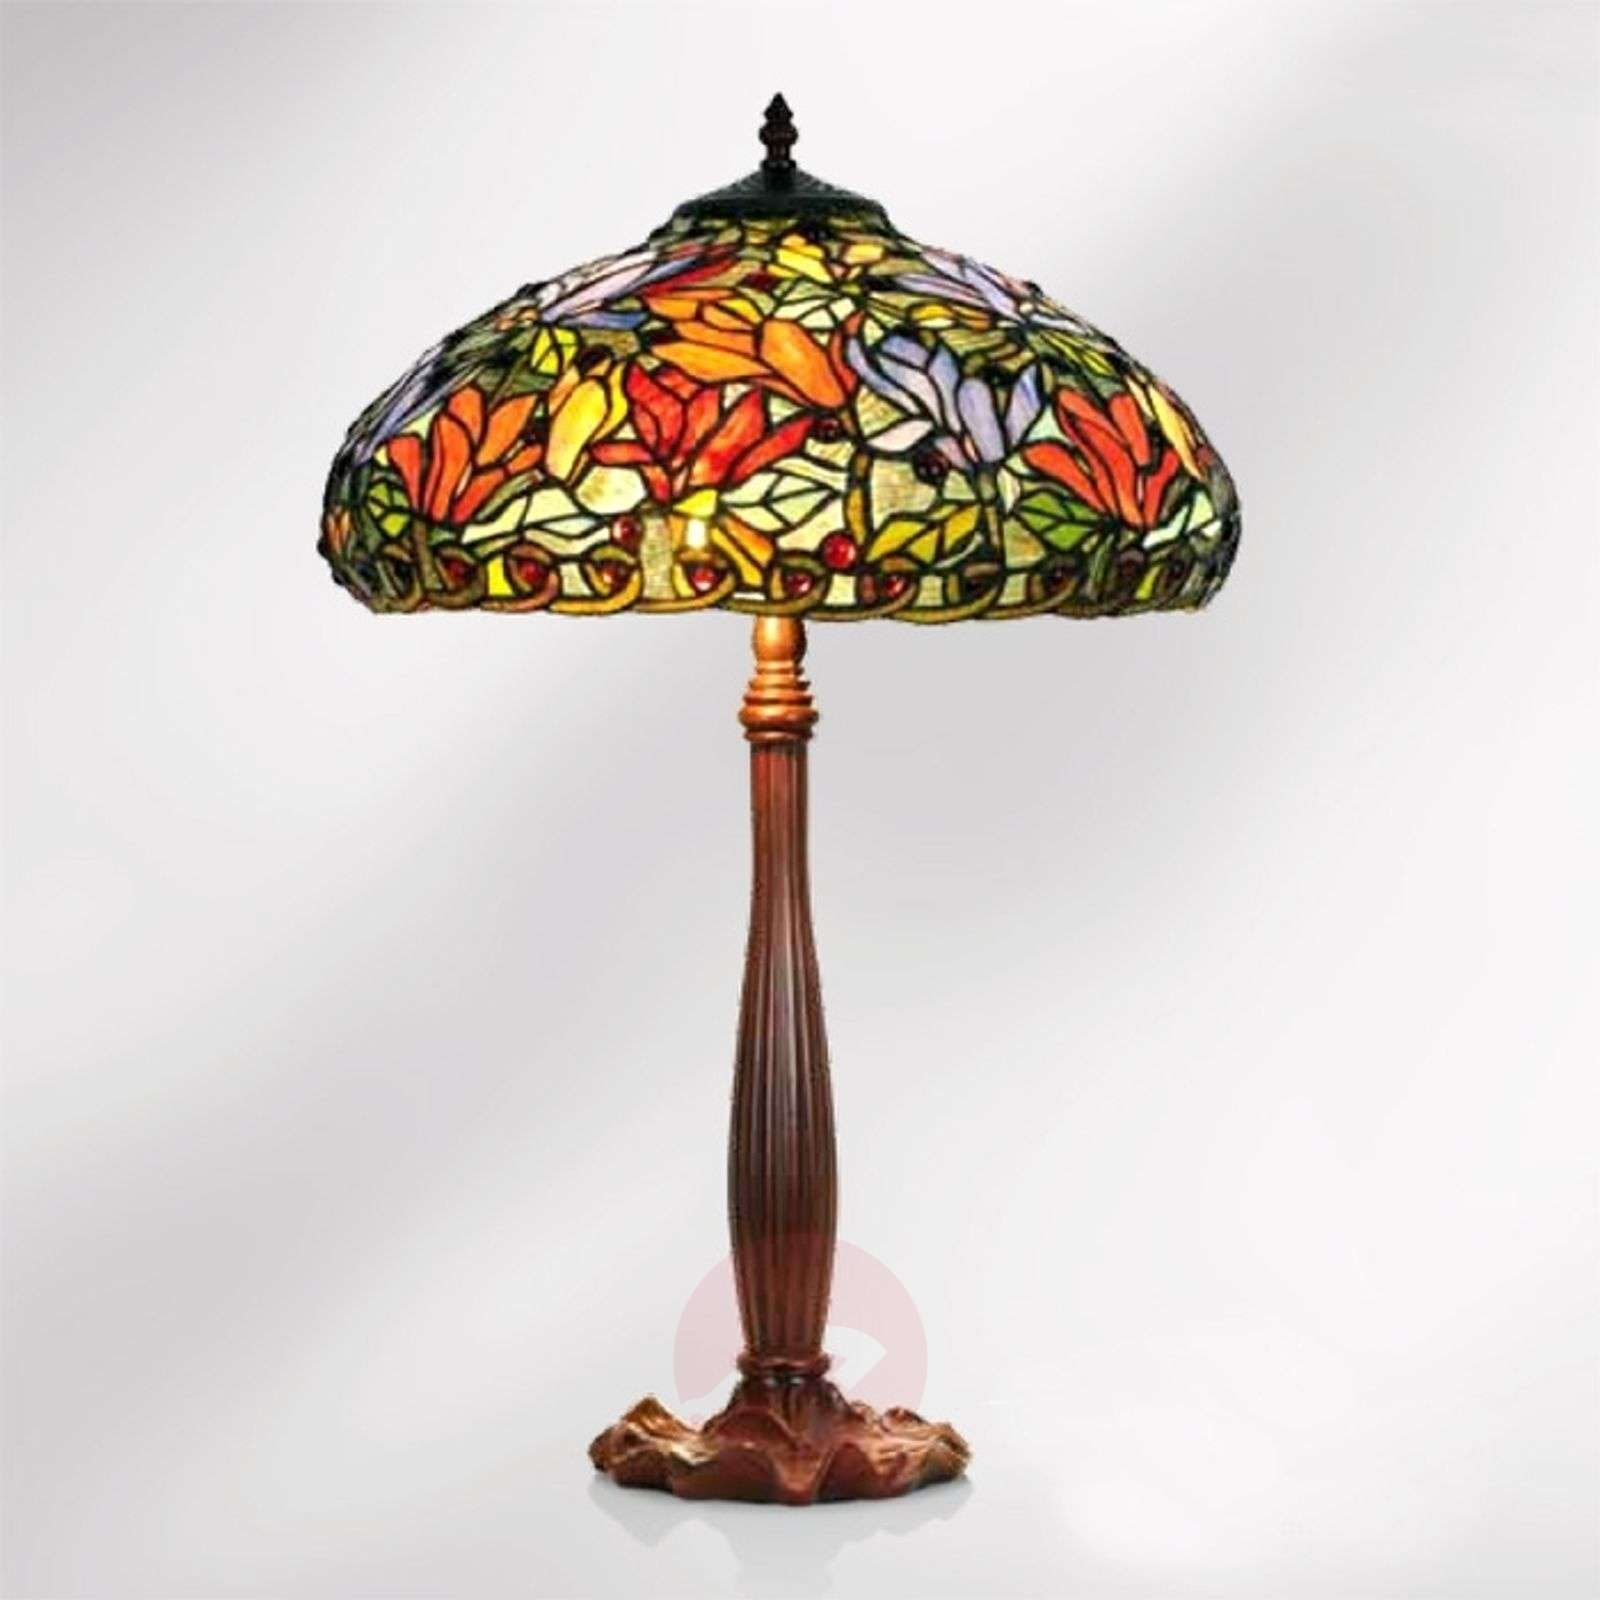 Table lamp Elaine in a floral Tiffany style, 64 cm-1032253-01